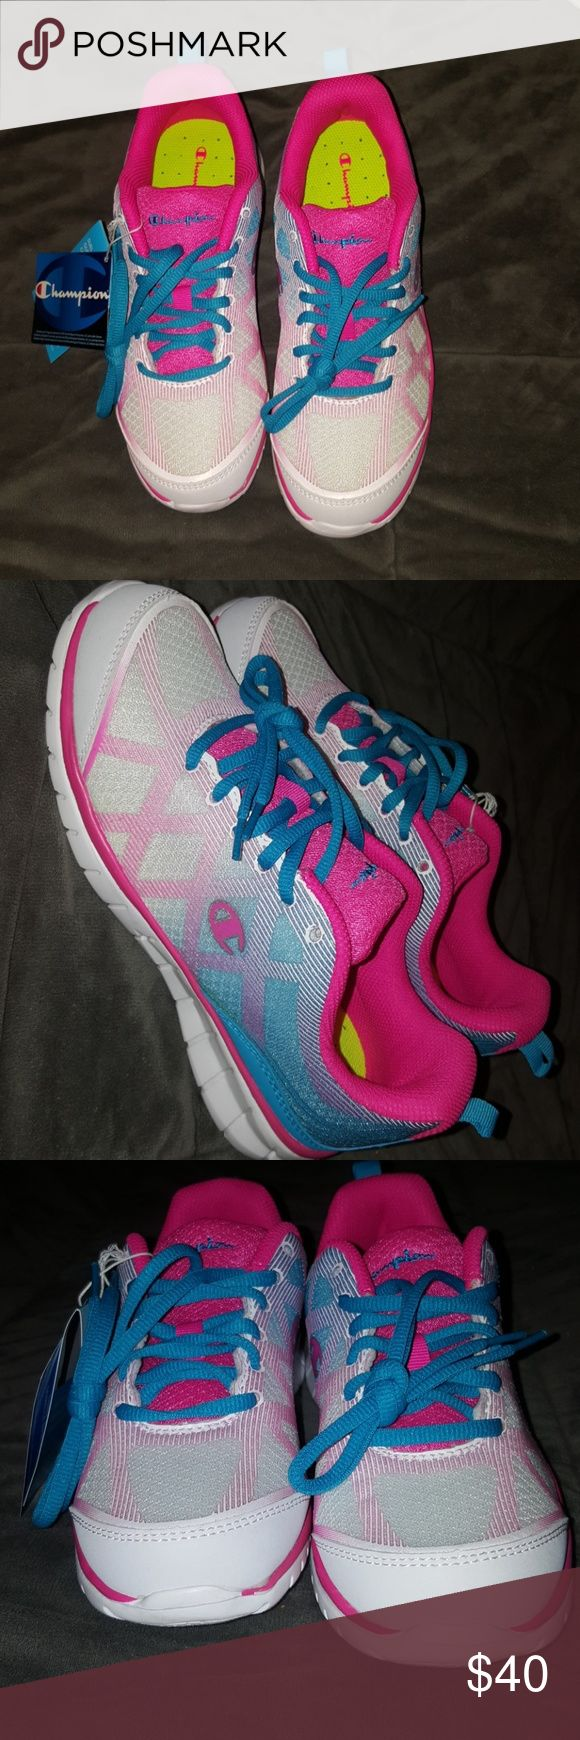 Women's Champion Sneakers New with tags. Size 6 Champion Shoes